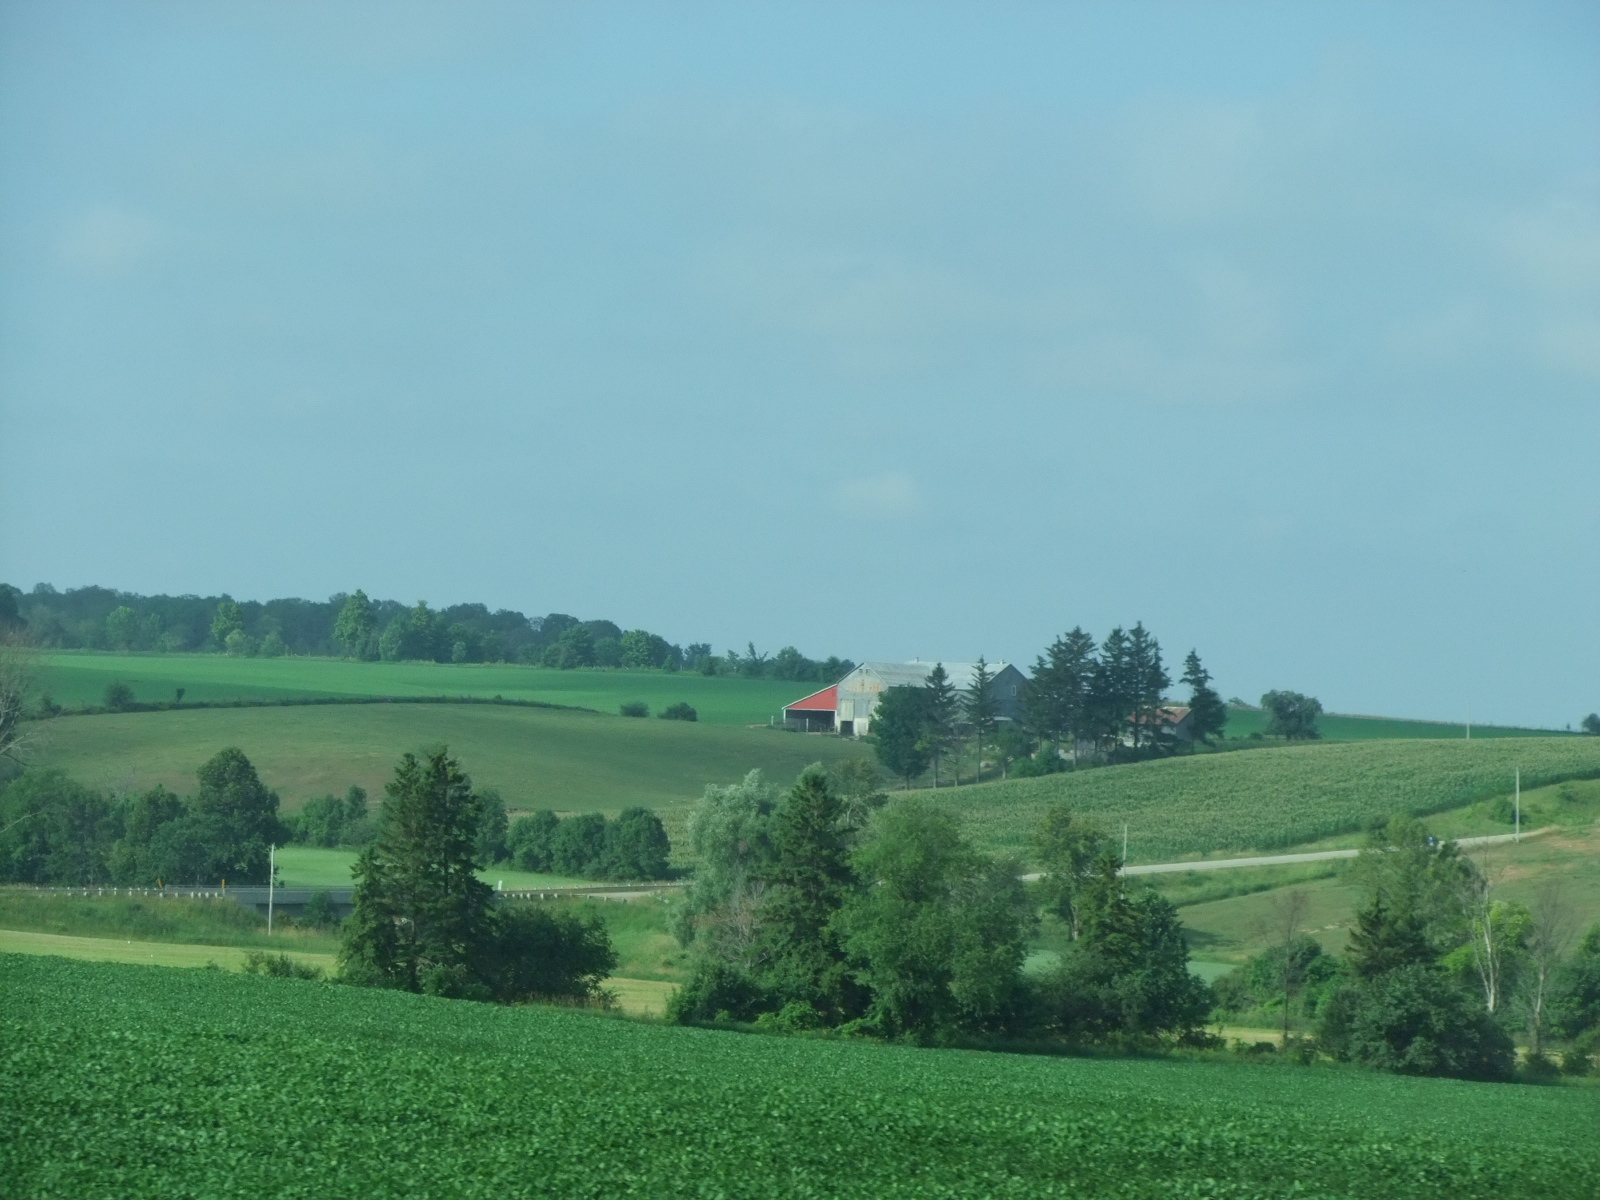 Just North of Wiarton & South of the Checkerboard